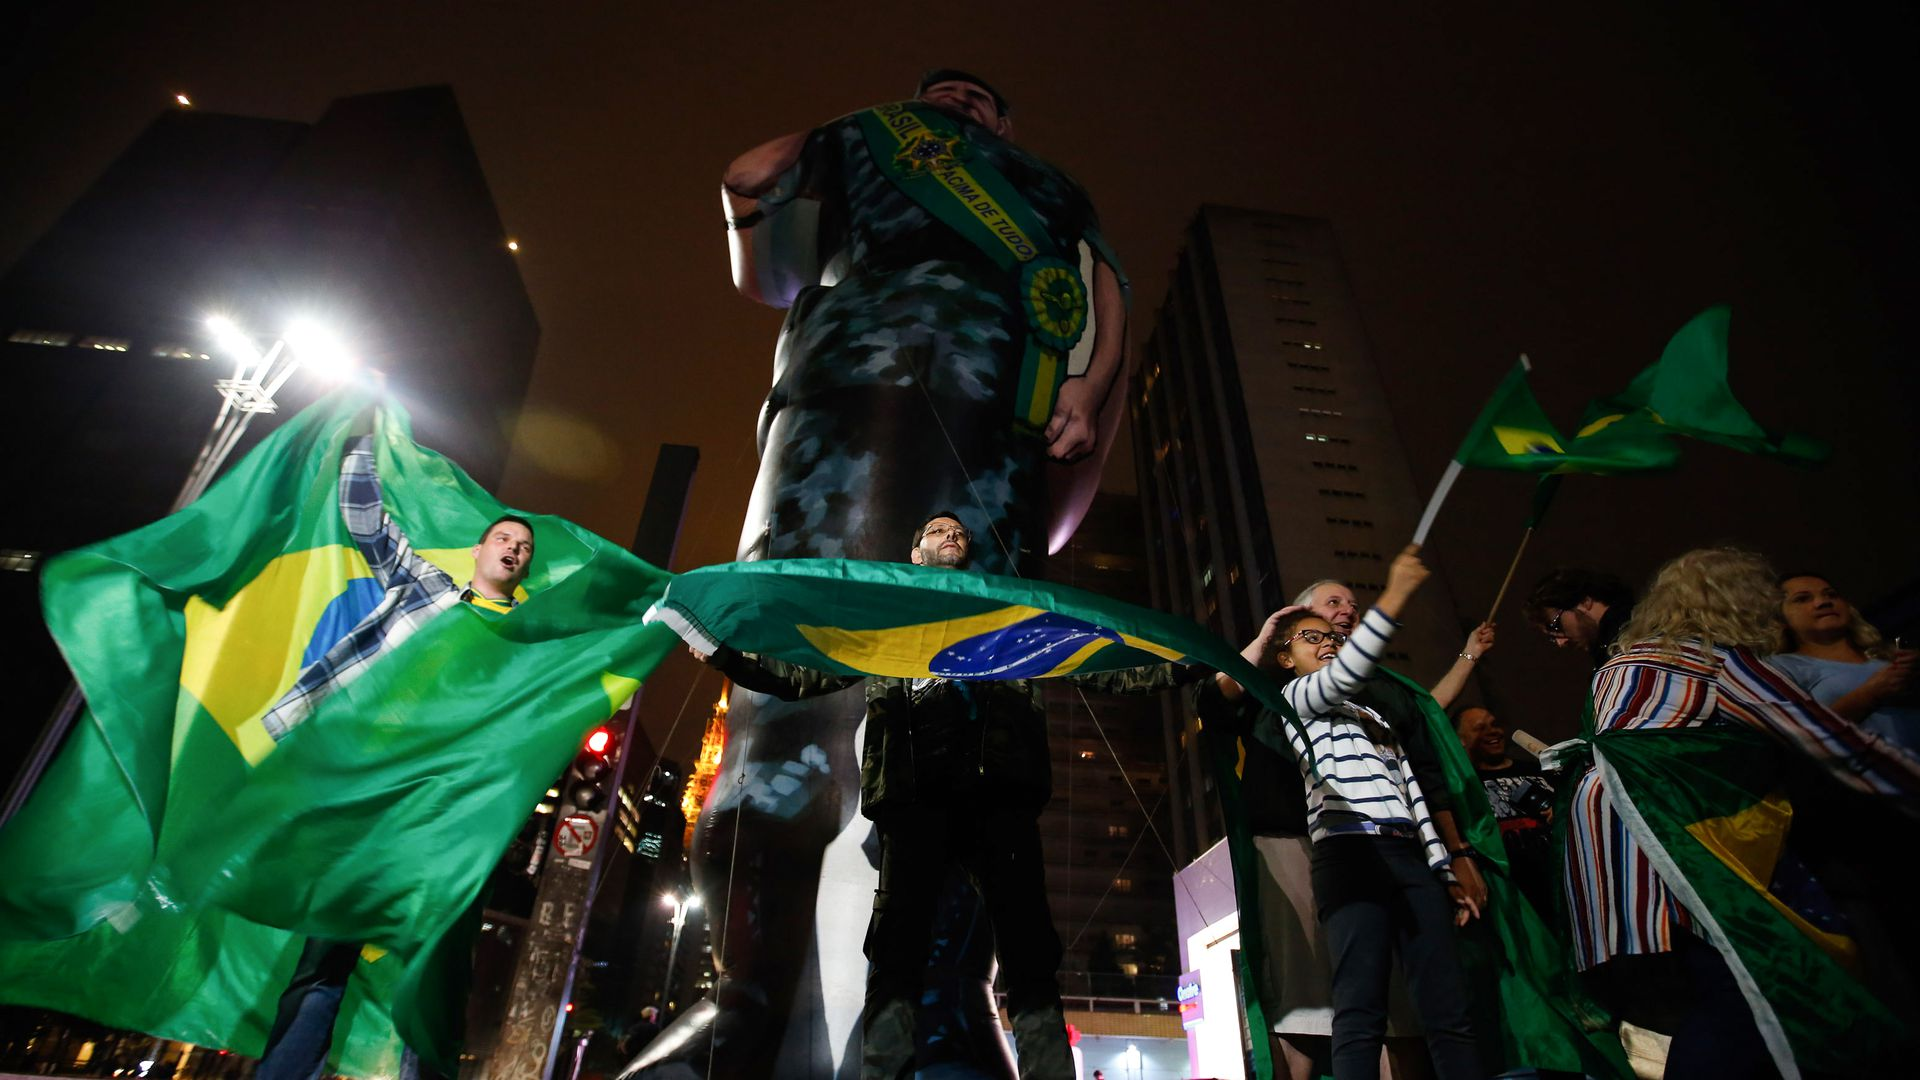 Supporters of Jair Bolsonaro wave Brazilian flags